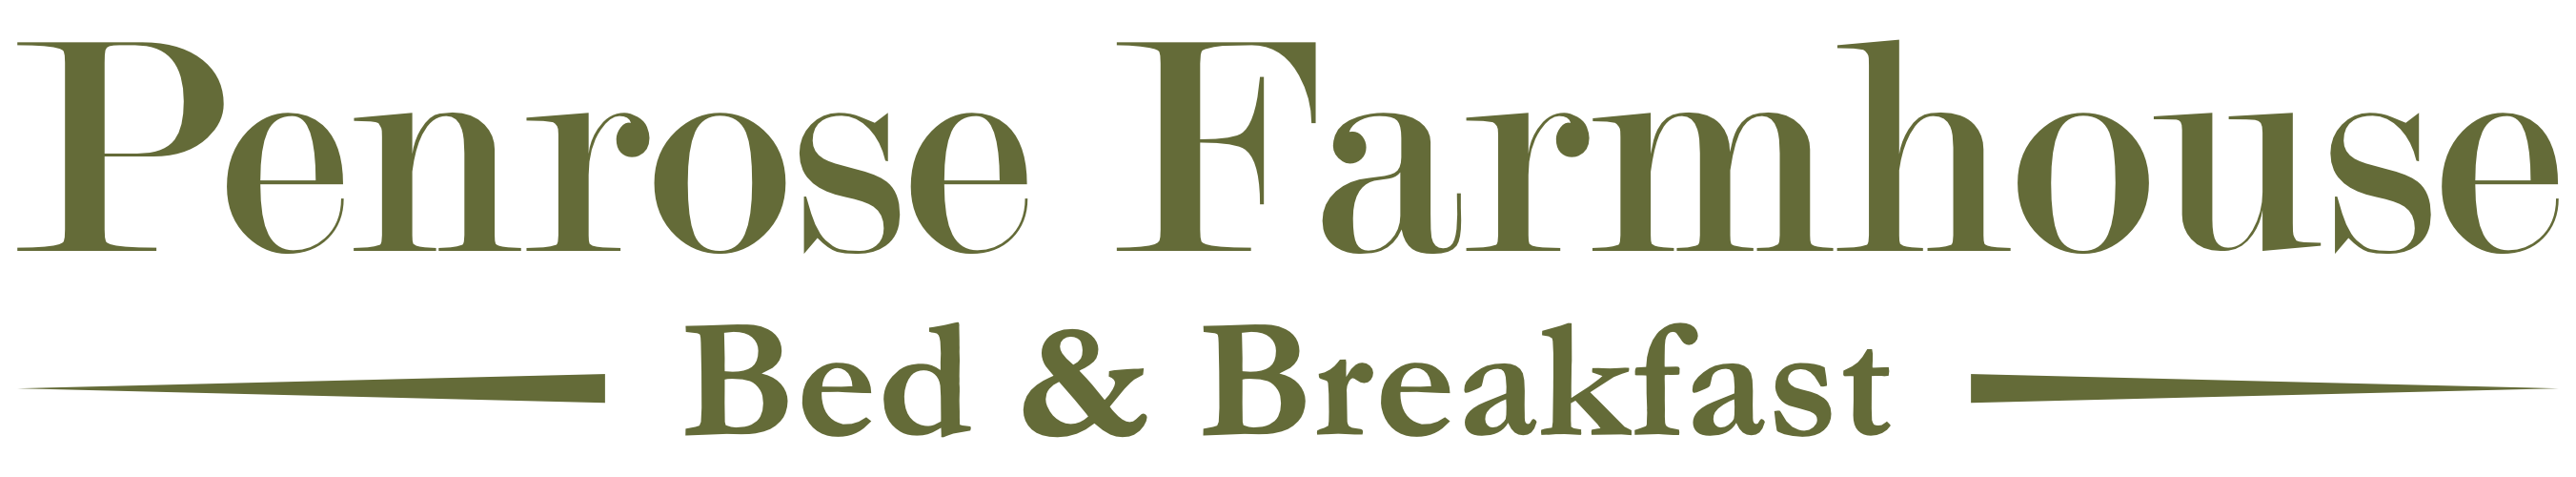 Penrose Farmhouse Bed and Breakfast